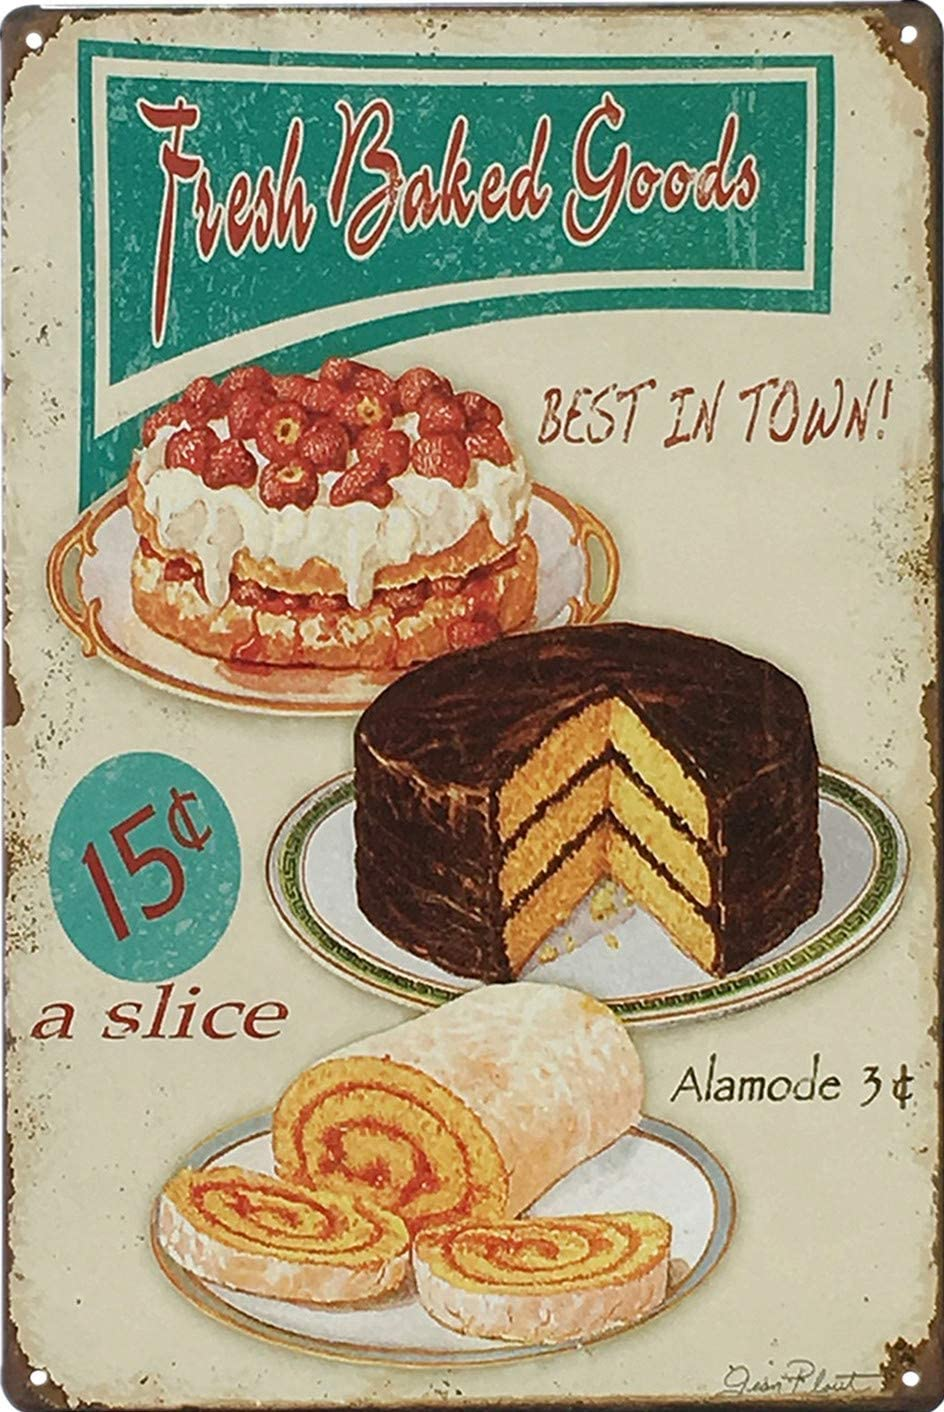 UNIQUELOVER Kitchen Signs Wall Decor Rustic, Fresh Baked Goods Best in Town  Vintage Retro Metal Tin Sign Wall Plaque Poster 17 x 17 Inches, Small